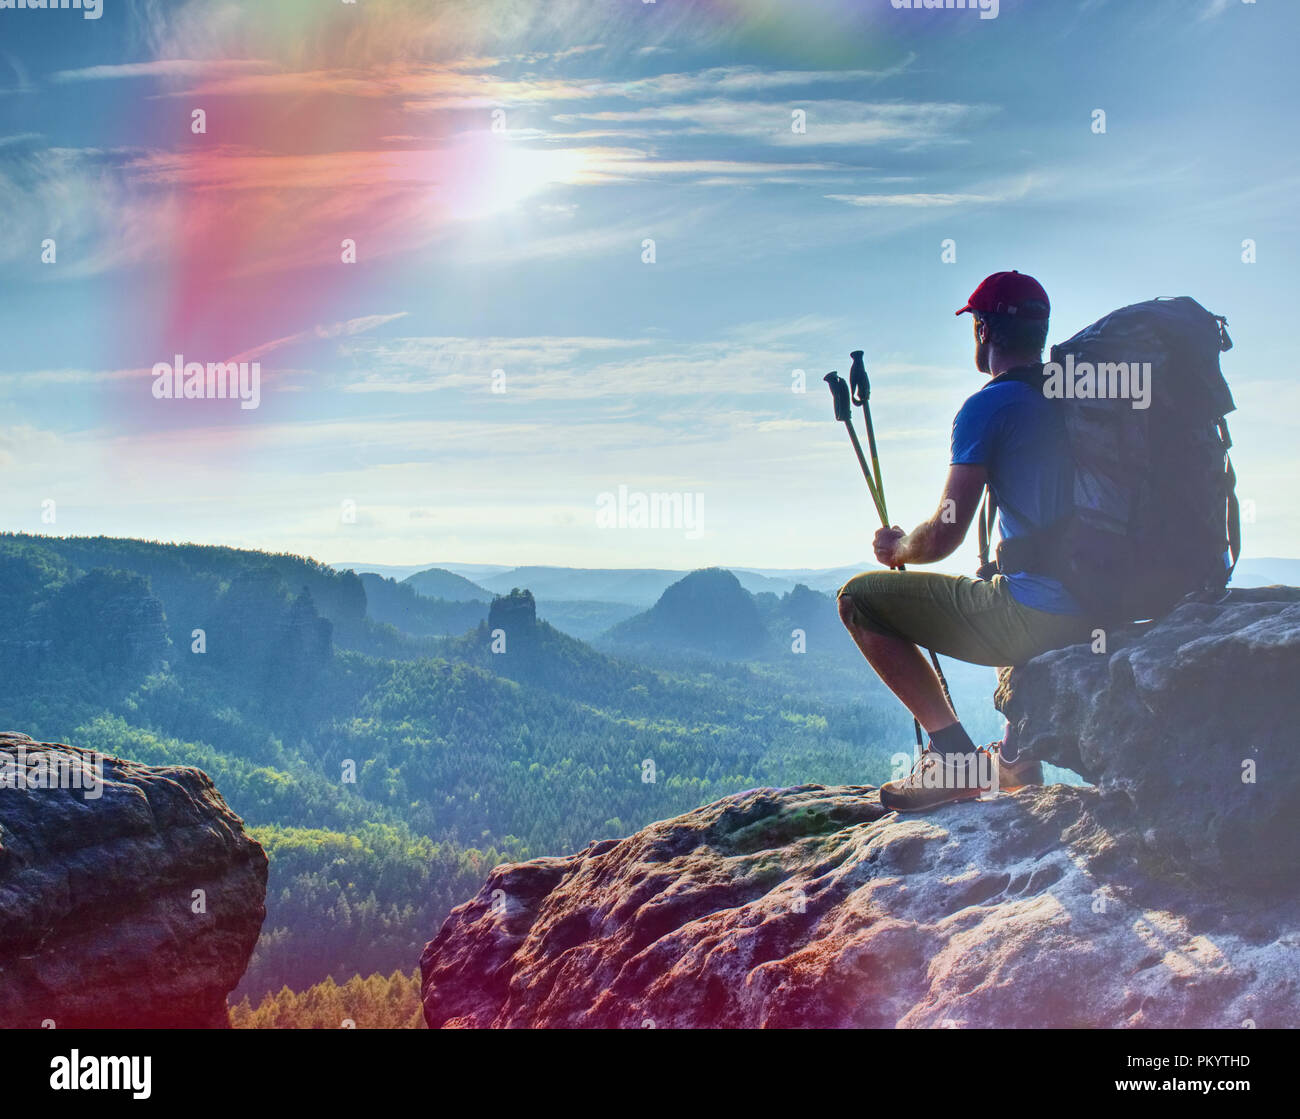 Man sitting on the rock cliff in mountain and watching on sunrise landscape. Nature composition. - Stock Image